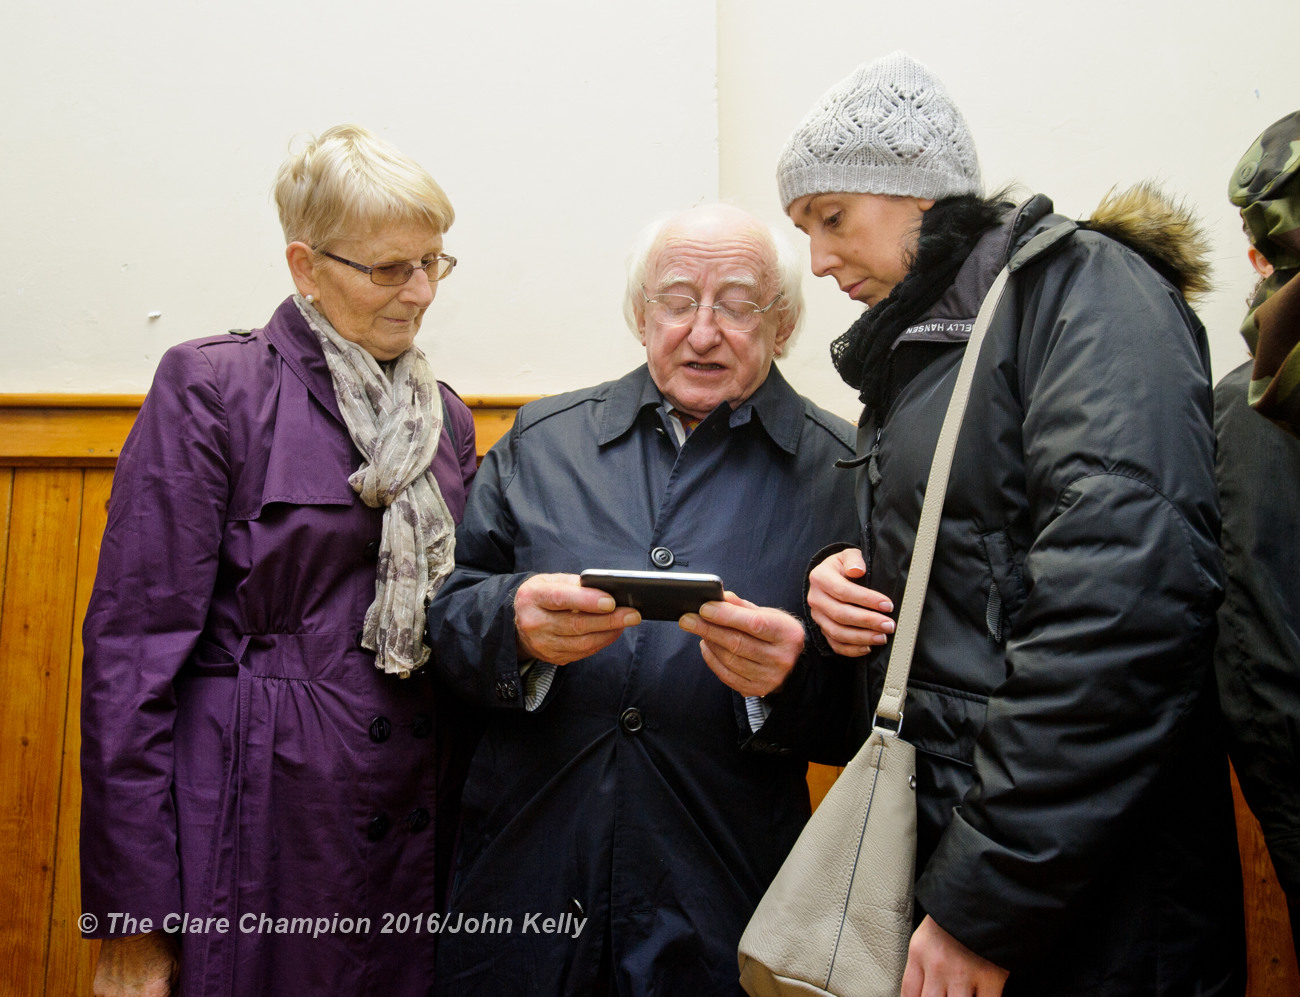 President Michael D Higgins chatting with Sarah Burke and her mother-in-law Sheila Burke of Cahermore, Kinvarra, who have houses affected by flooding during his visit to Labane to meet the victims of flooding in the area. Photograph by John Kelly.